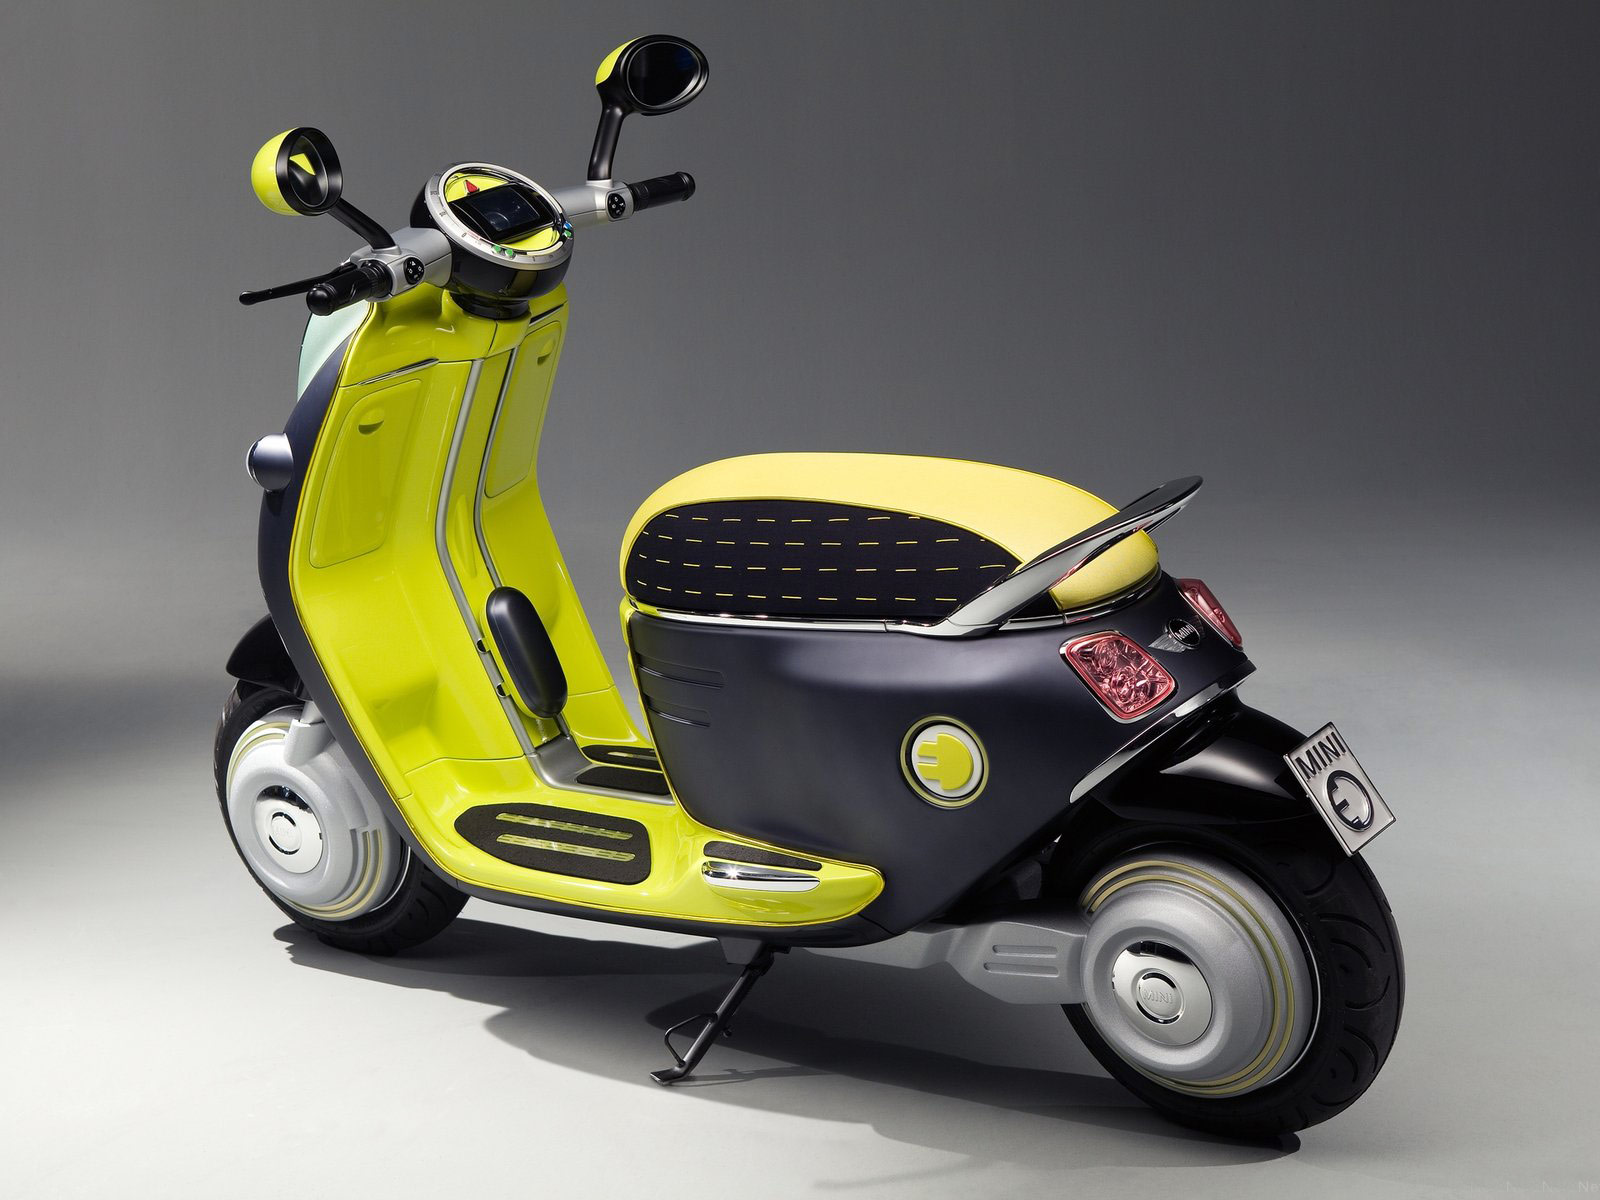 motorcycle super sport  MINI Scooter E Concept  2010  wallpapers